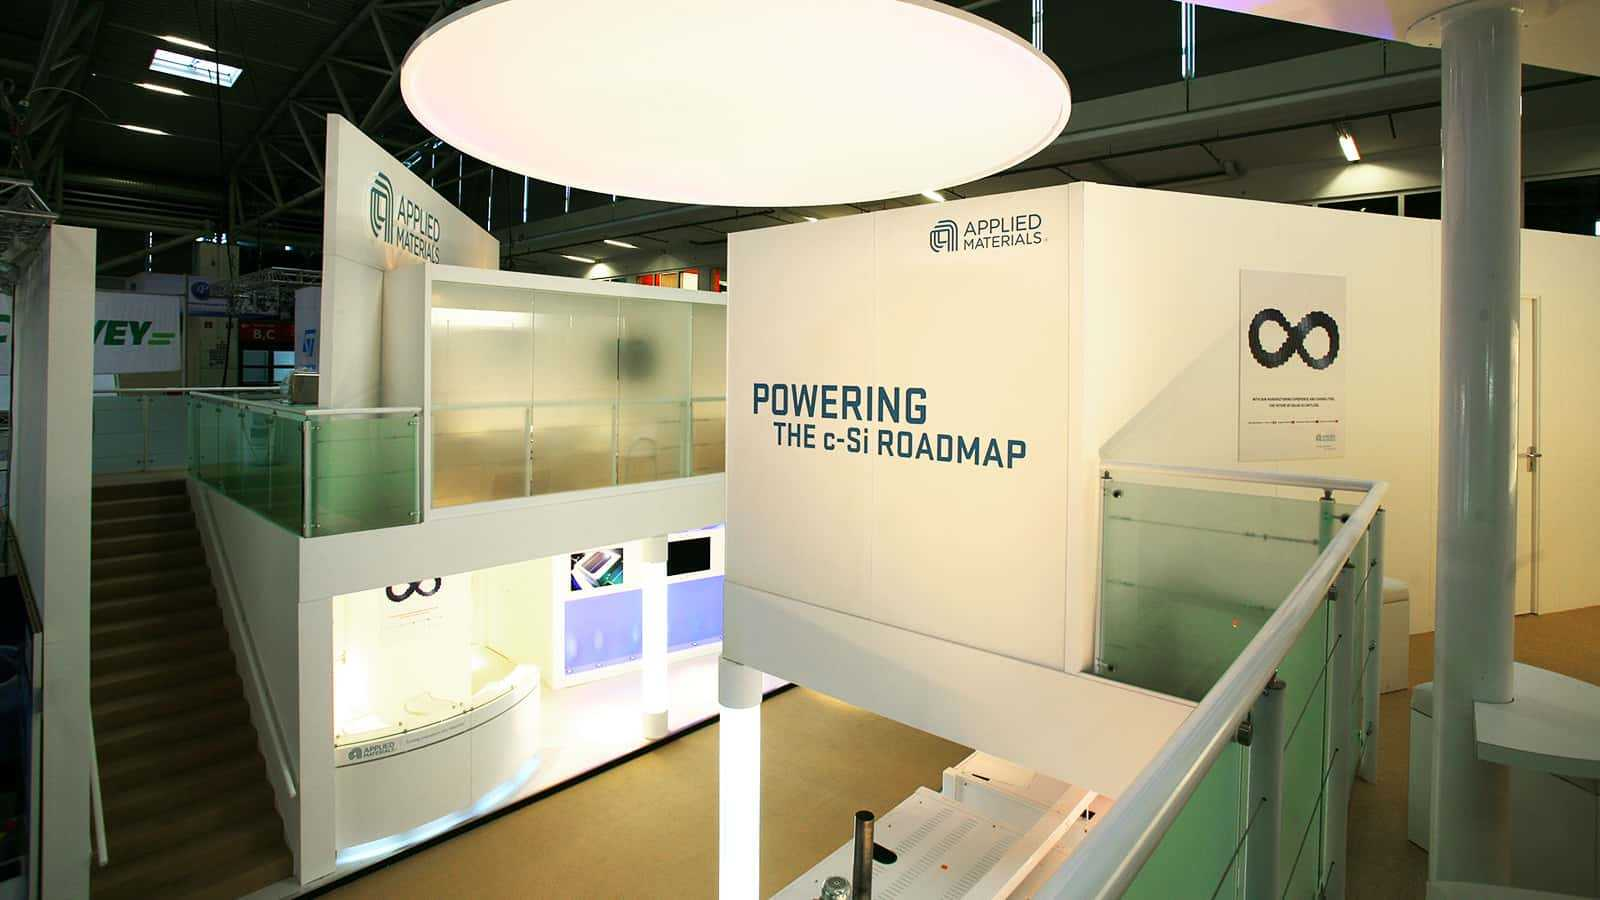 The second floor of the A look at the first floor from the Applied Materials Intersolar trade show exhibit in 2011.